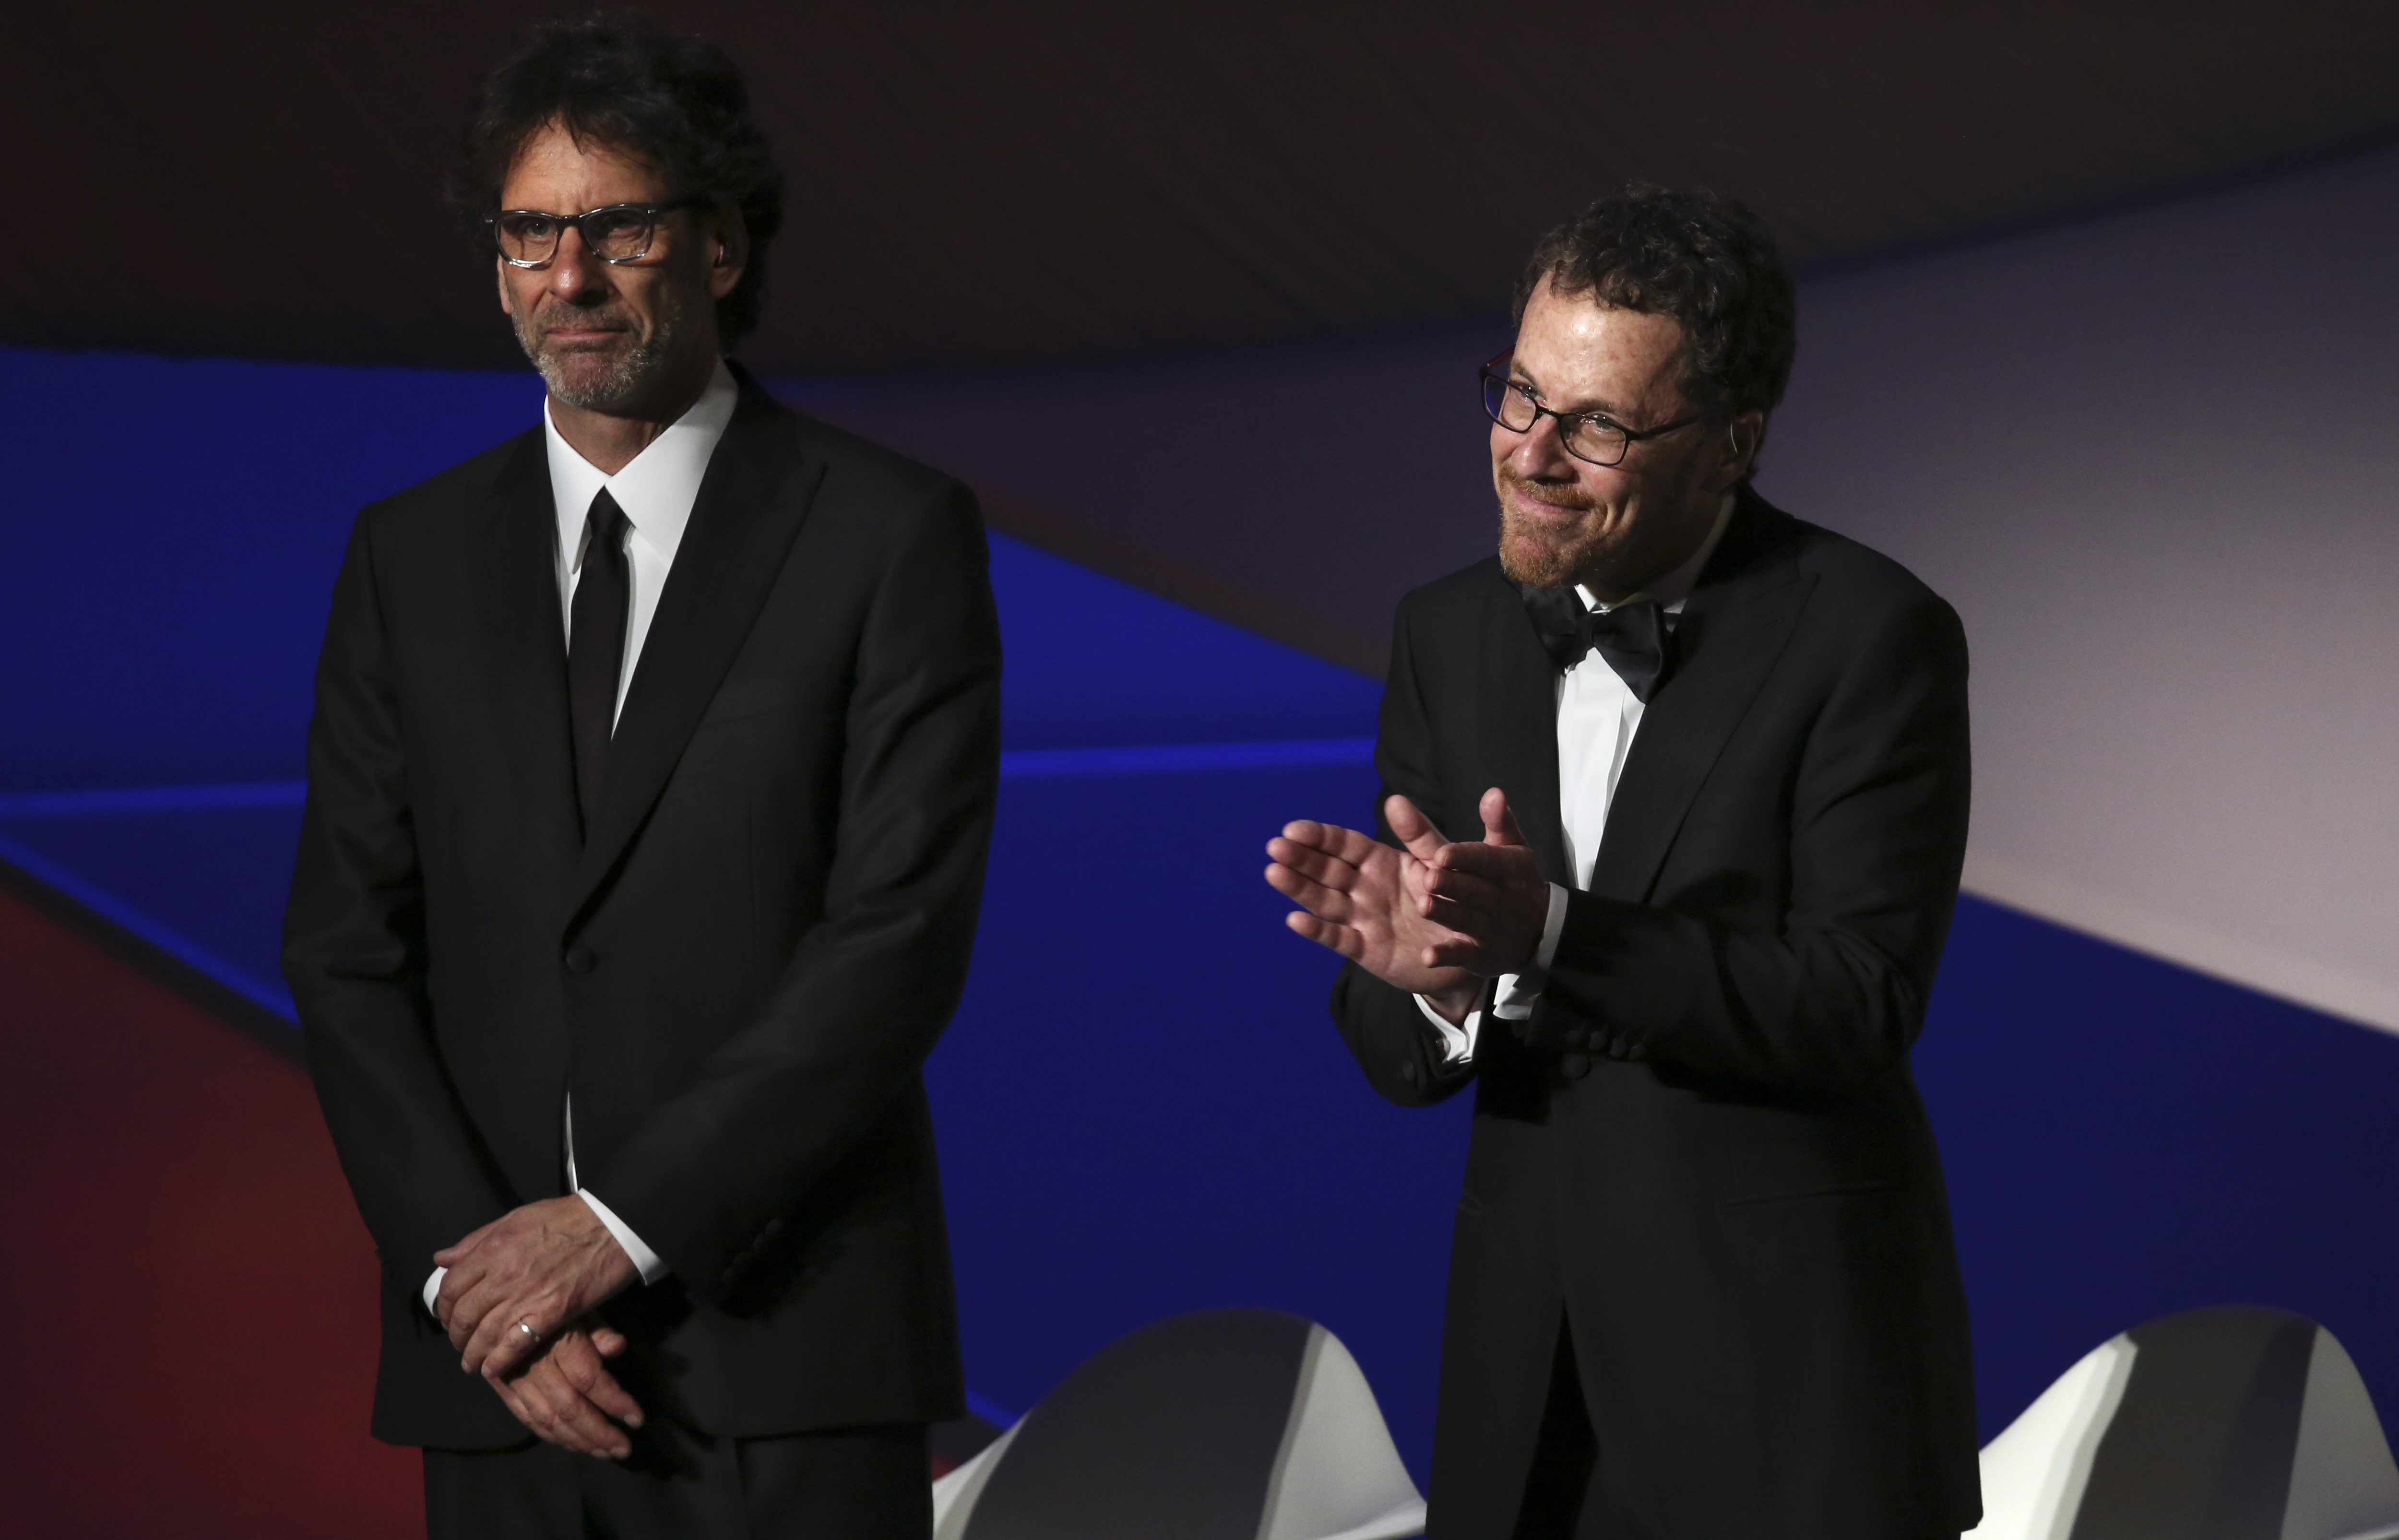 Jury presidents Ethan Coen, right, and Joel Coen stand on stage during the opening ceremony at the 68th international film festival, Cannes, southern France, Wednesday, May 13, 2015. (Photo by Joel Ryan/Invision/AP)